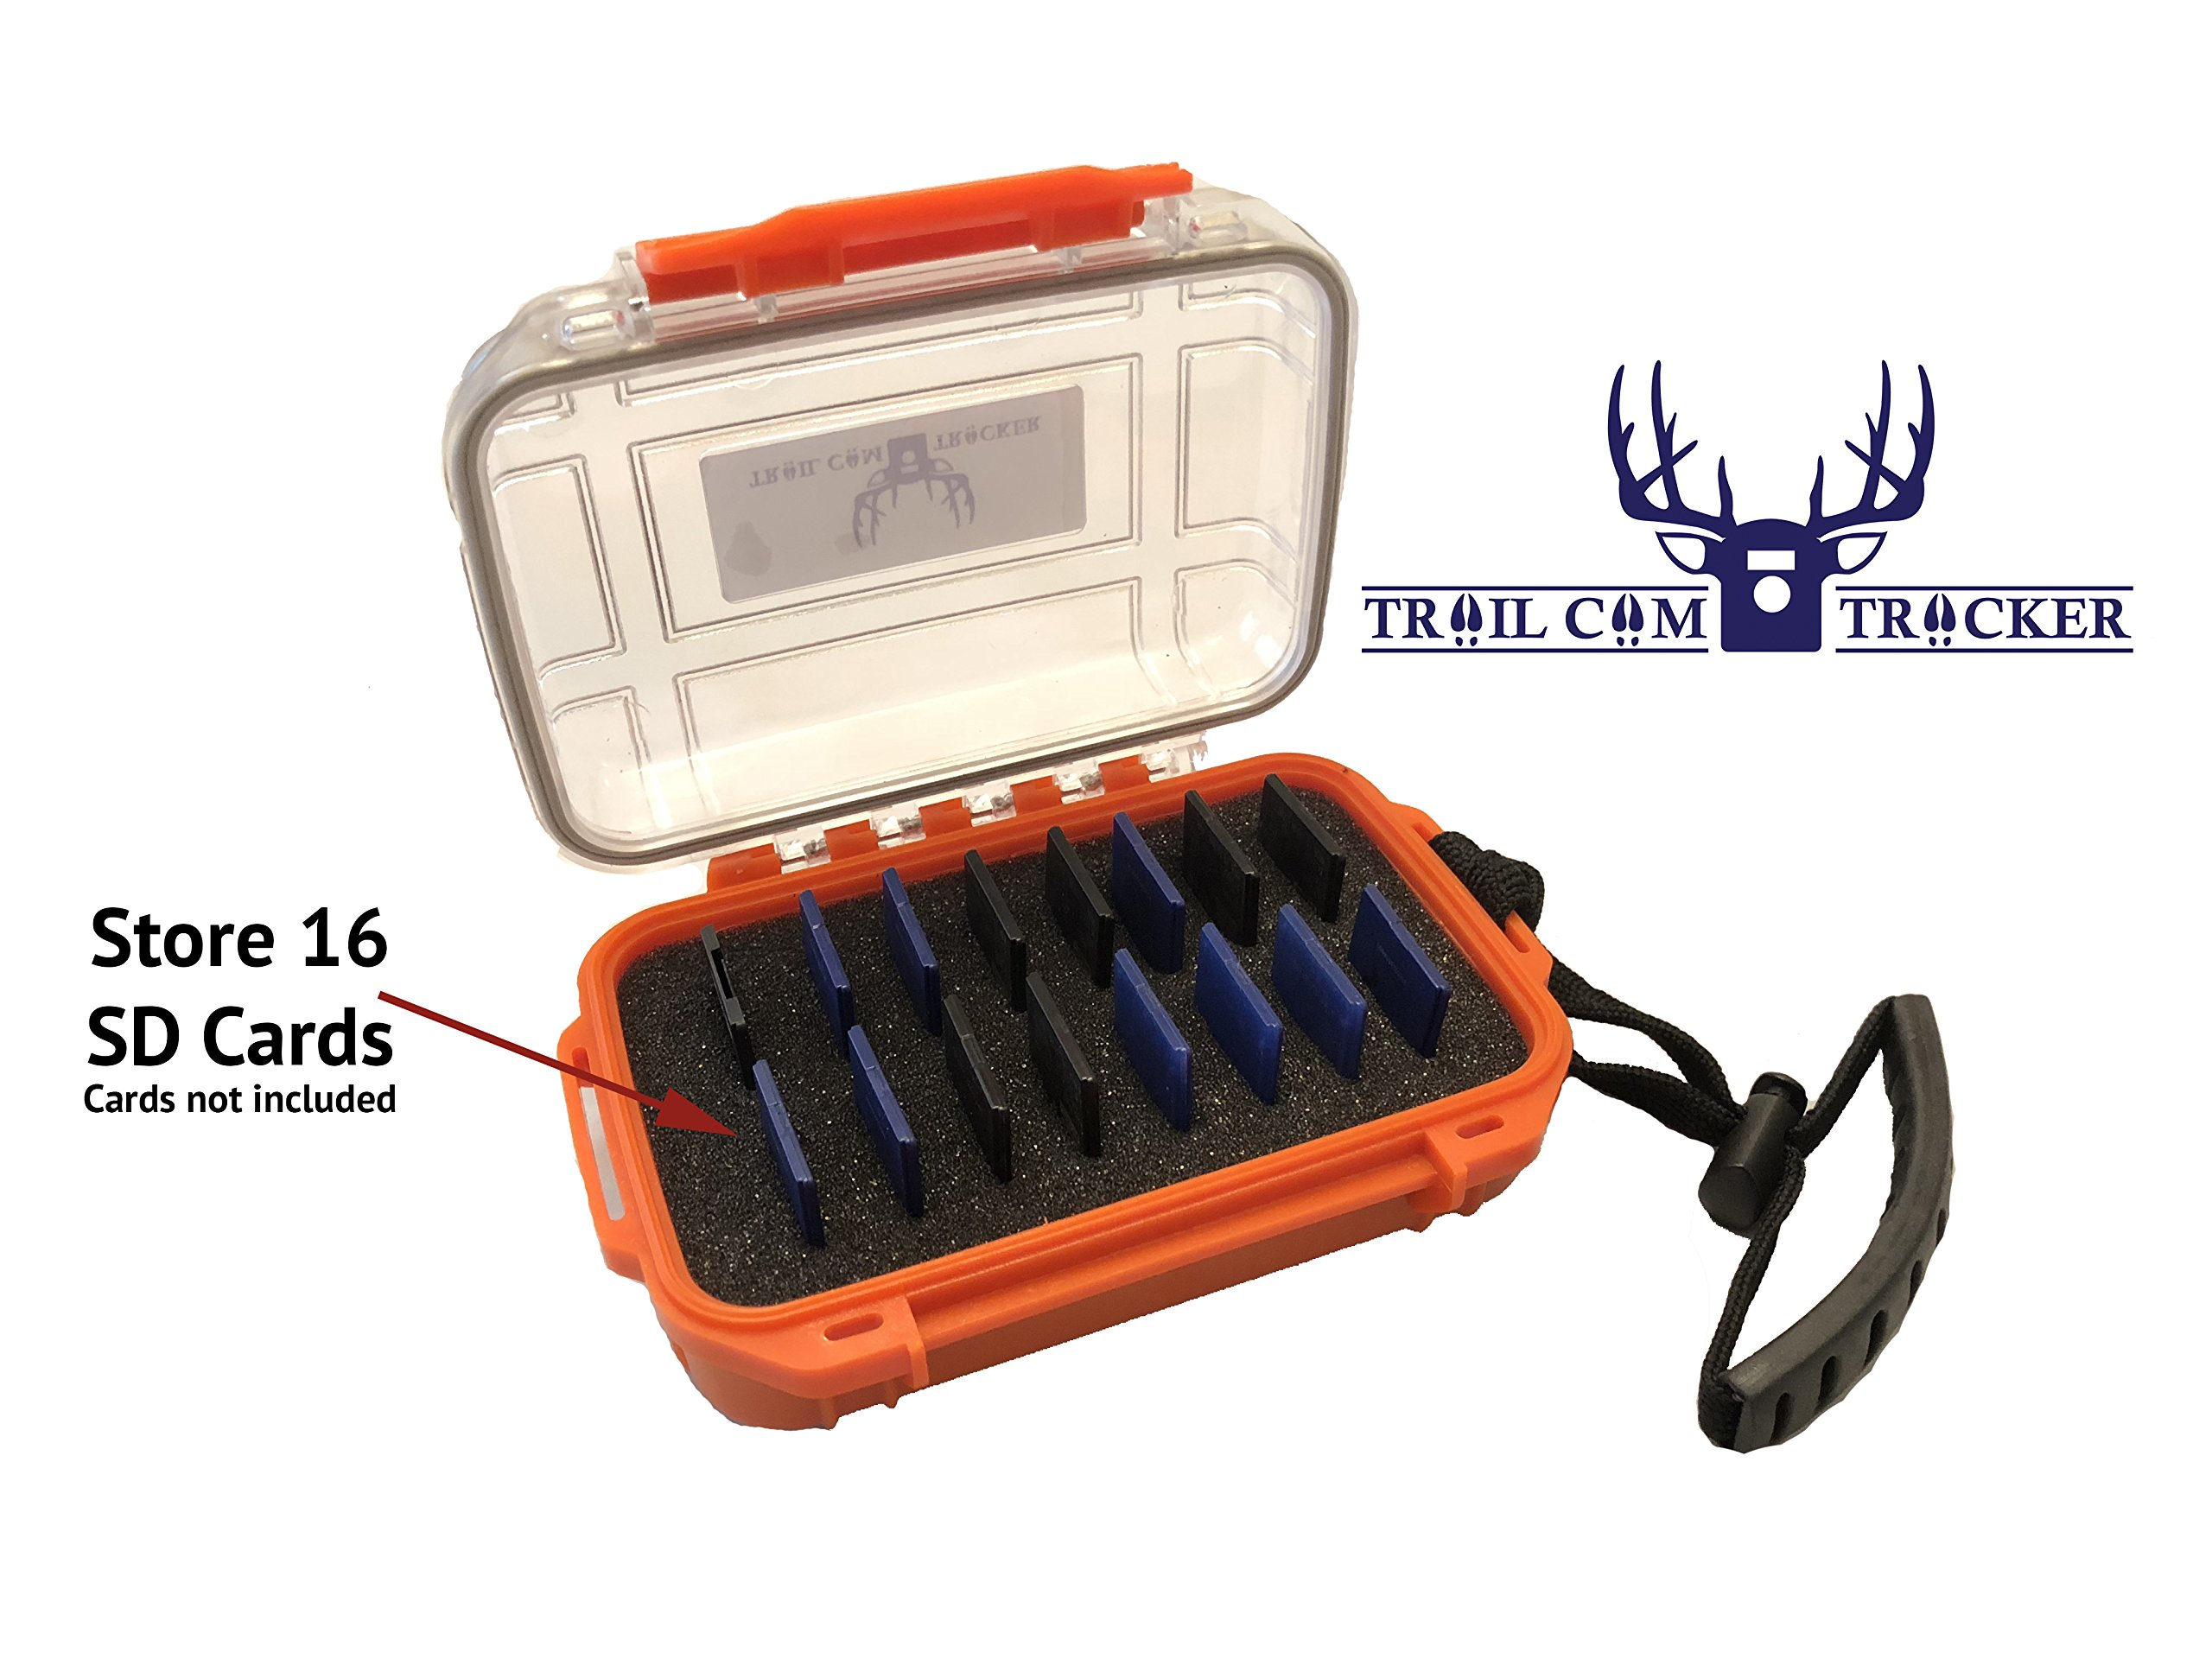 Waterproof Trail Camera SD Card Case by Trail Cam Tracker - Rugged - Durable Storage - Holds 16 SD Memory Cards - BEST hunting trail camera SD Card Case – Store iPhone & Android card reader